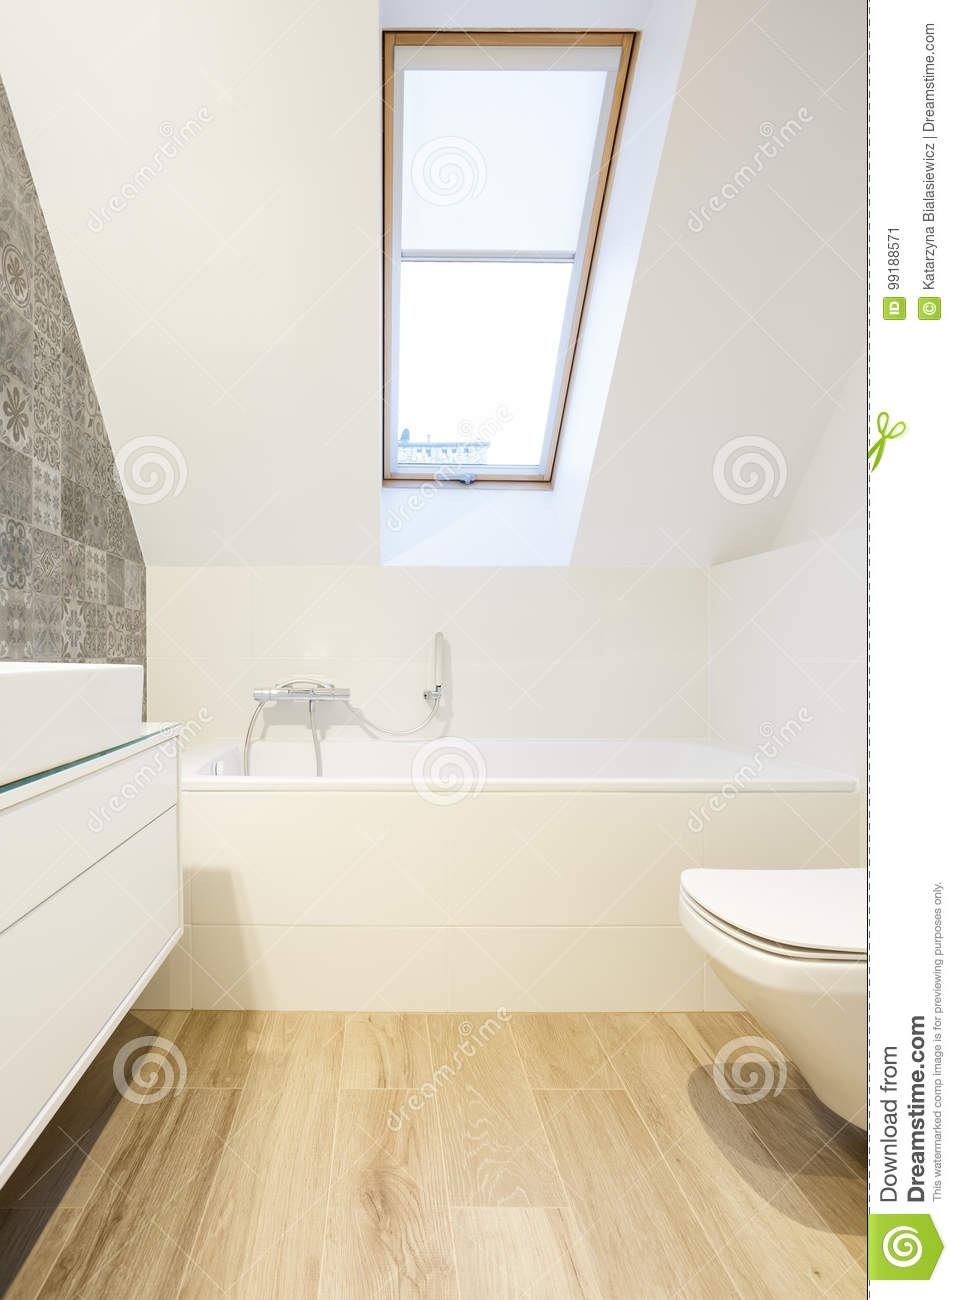 Decorative Wall In Minimalist Bathroom Stock Image - Image of tiles ...